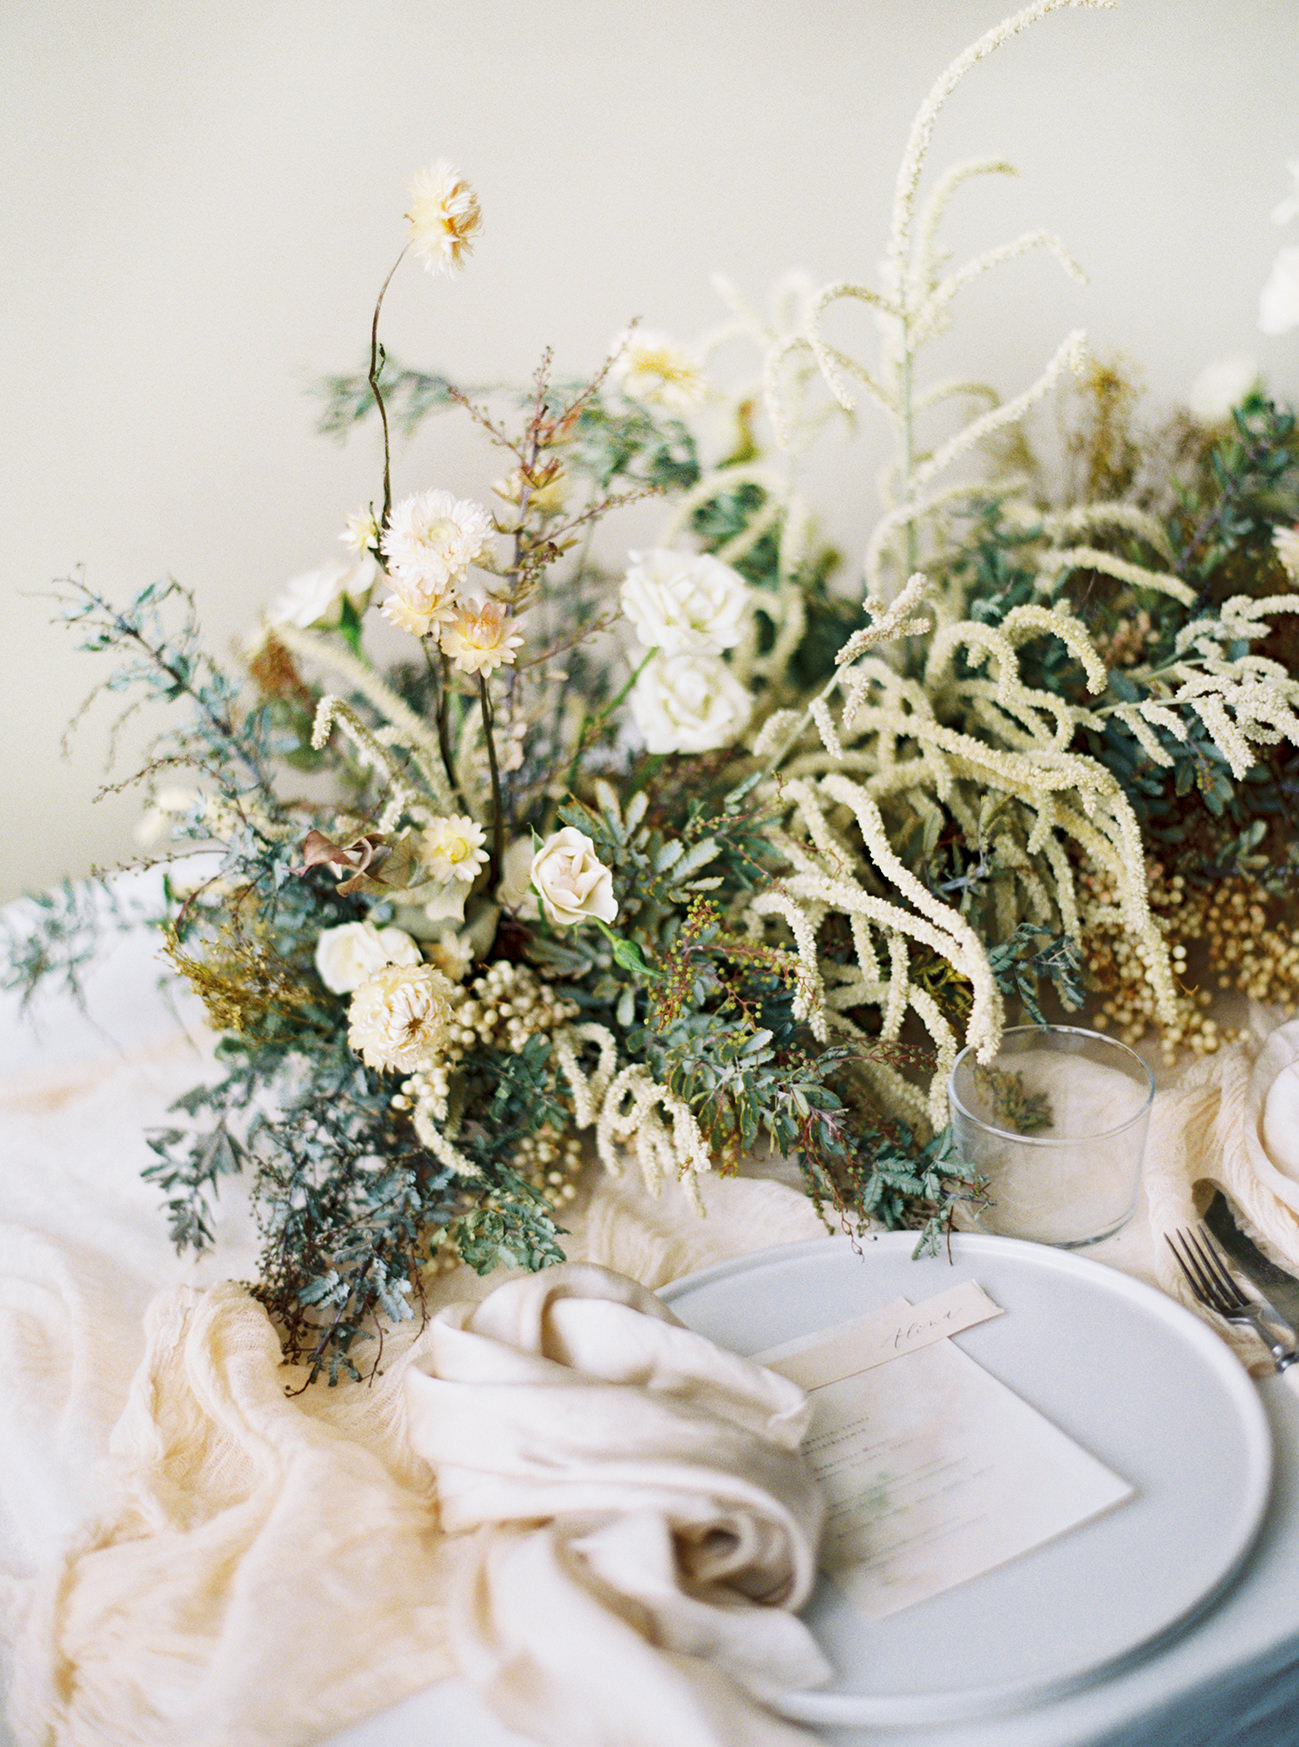 Bridal Inspiration, Wedding Bouquet, Hääkuvaus, Film Wedding Photographer, Table Setting Inspiration, Stationery, Dried Flowers, www.nordandmae.com, www.susannanordvall (19).jpg